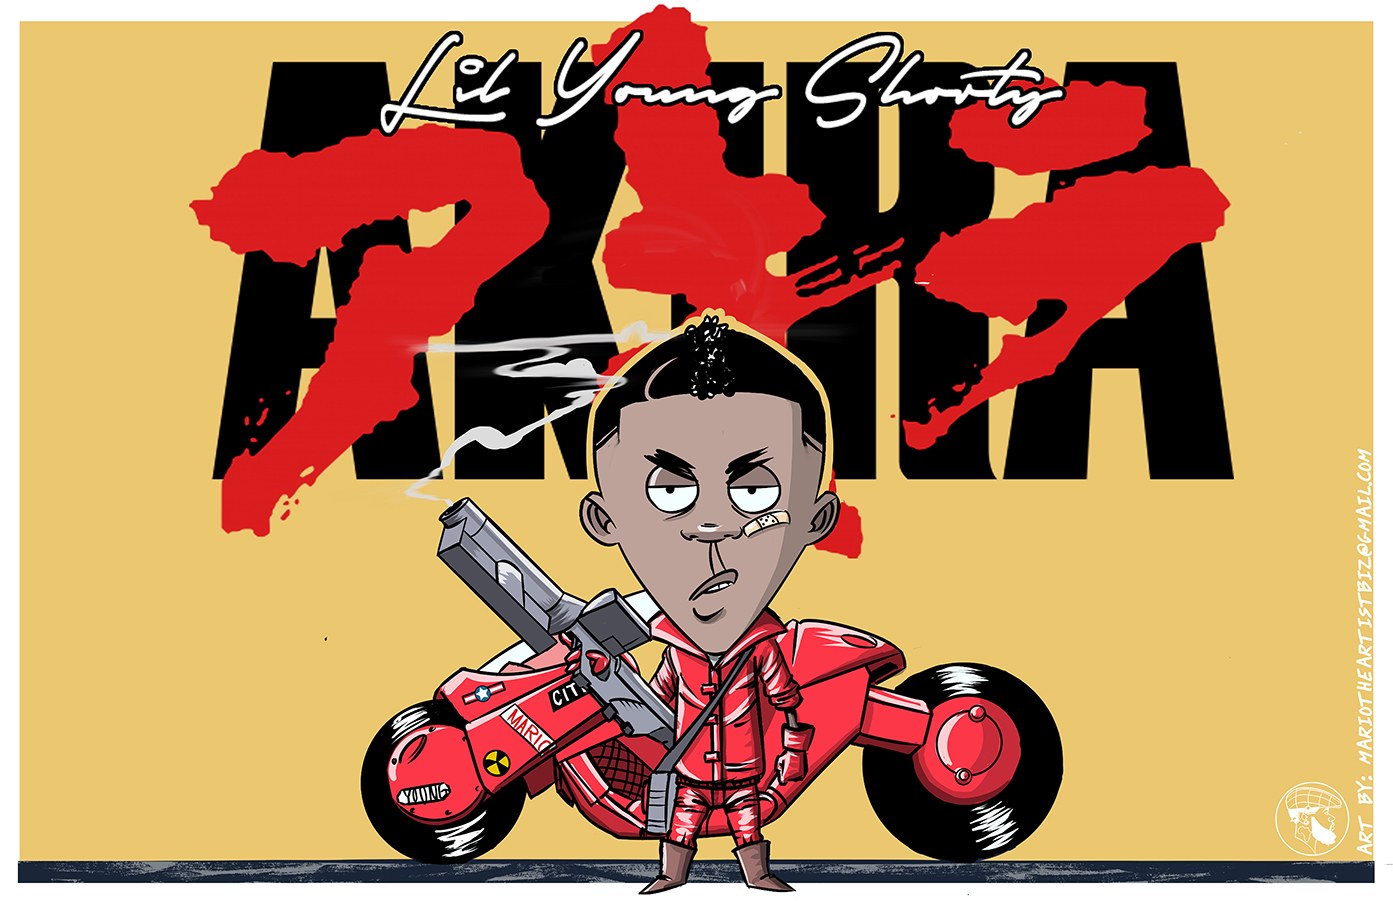 Lil Young Shorty as kaneda